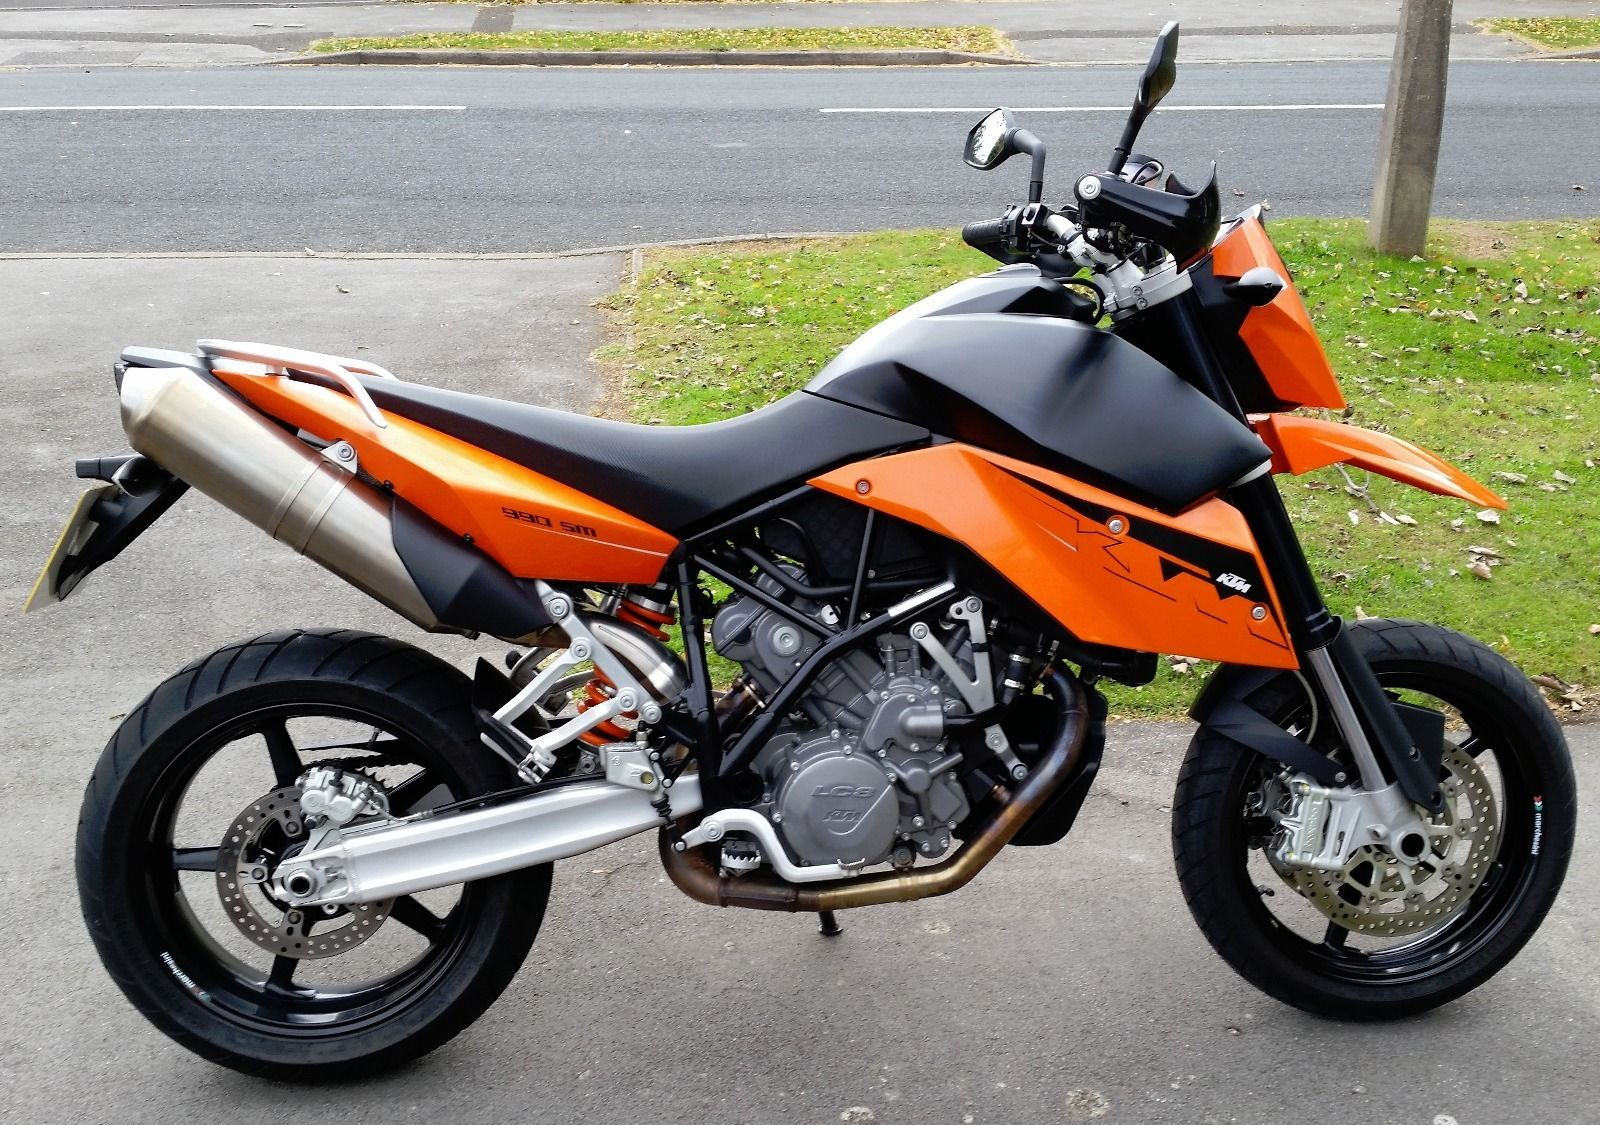 ktm 990 sm supermoto motorcycle 2008 only 5800 miles many extras inc sat nav. Black Bedroom Furniture Sets. Home Design Ideas